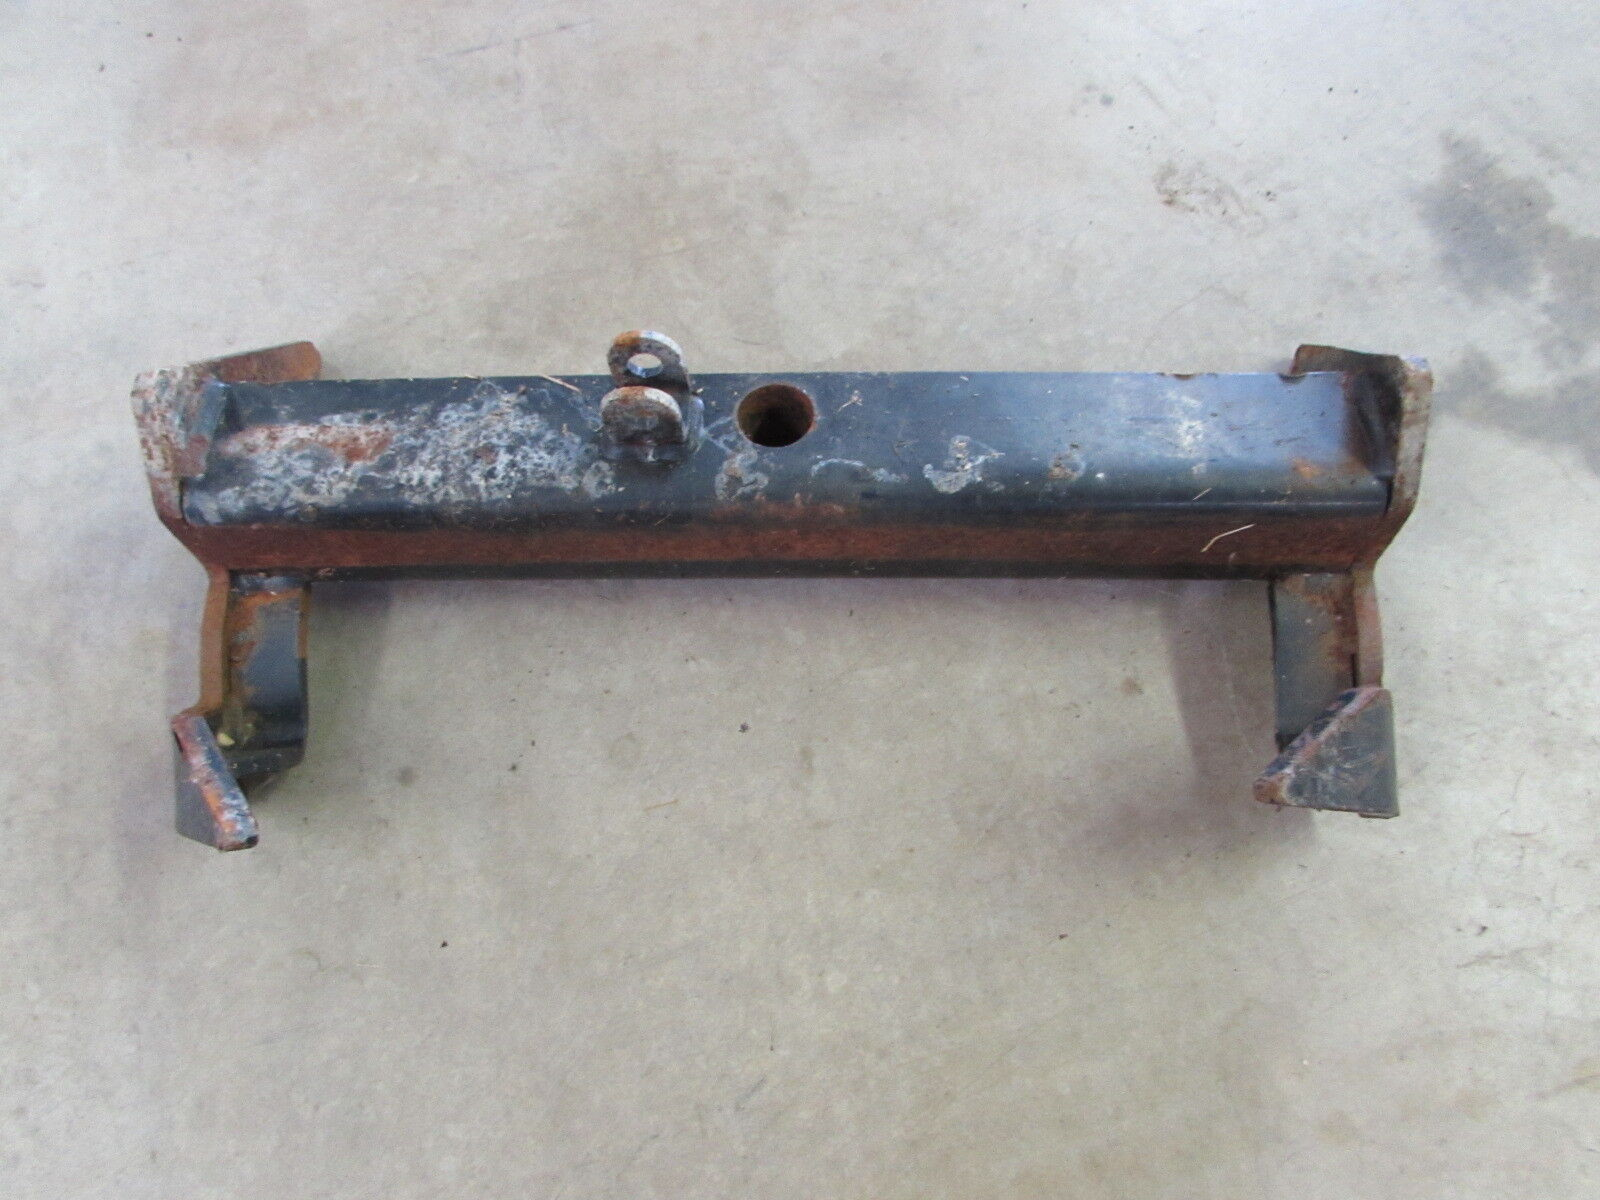 Buy Used Snow Plows And Related Parts From Top Rated Salvage Yards Meyers Plow Meyer Ag Ez Xpress Stand Clevis 19180